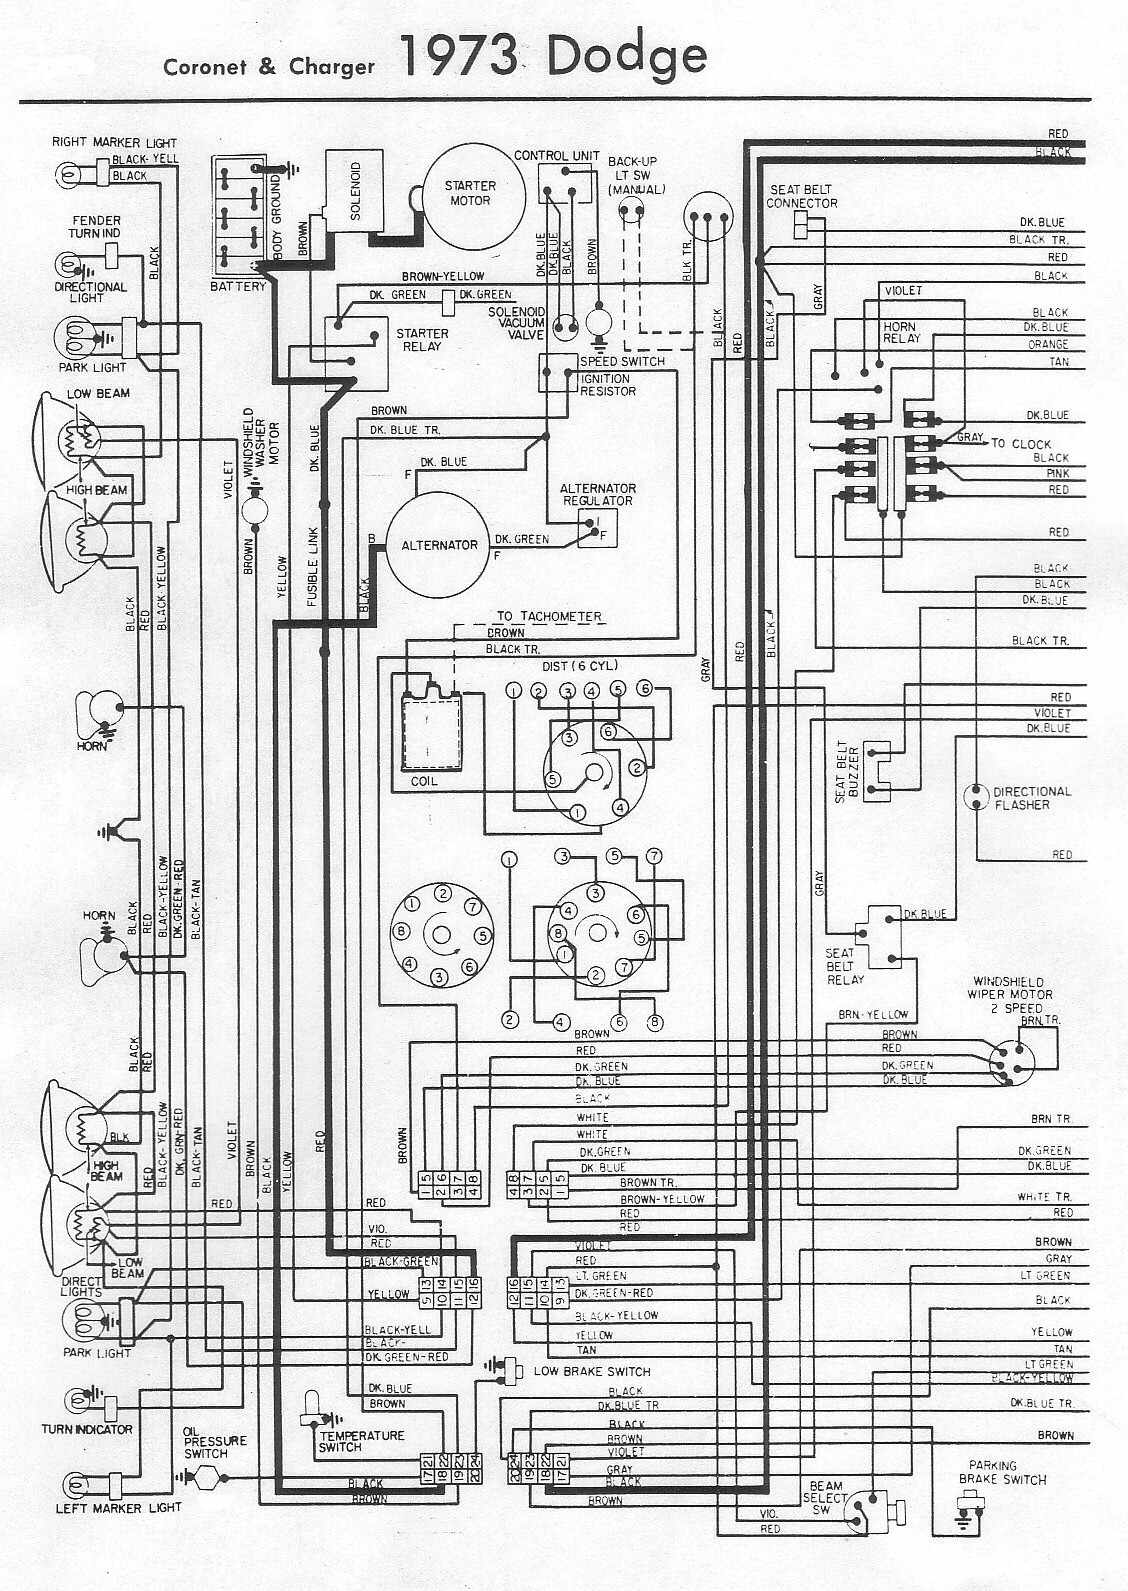 electrical wiring diagram of 1973 dodge coronet and charger?t\=1508404771 1973 dodge dart wiring diagram 1973 dodge dart instrument panel 1974 Dodge Charger SE at crackthecode.co